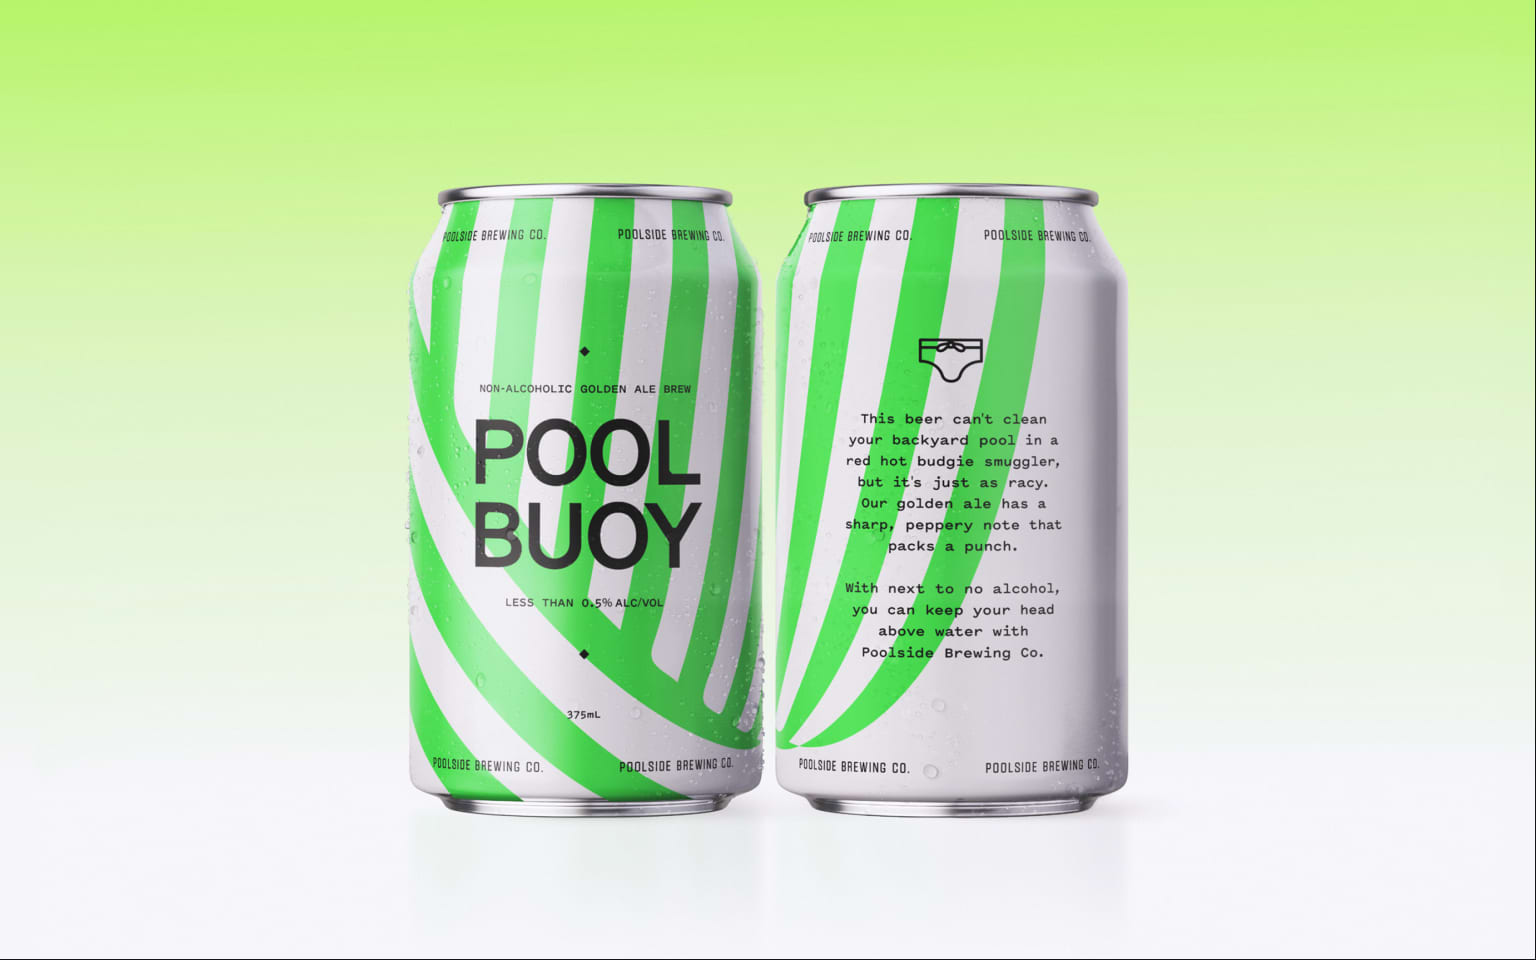 Poolside Brewery Co.